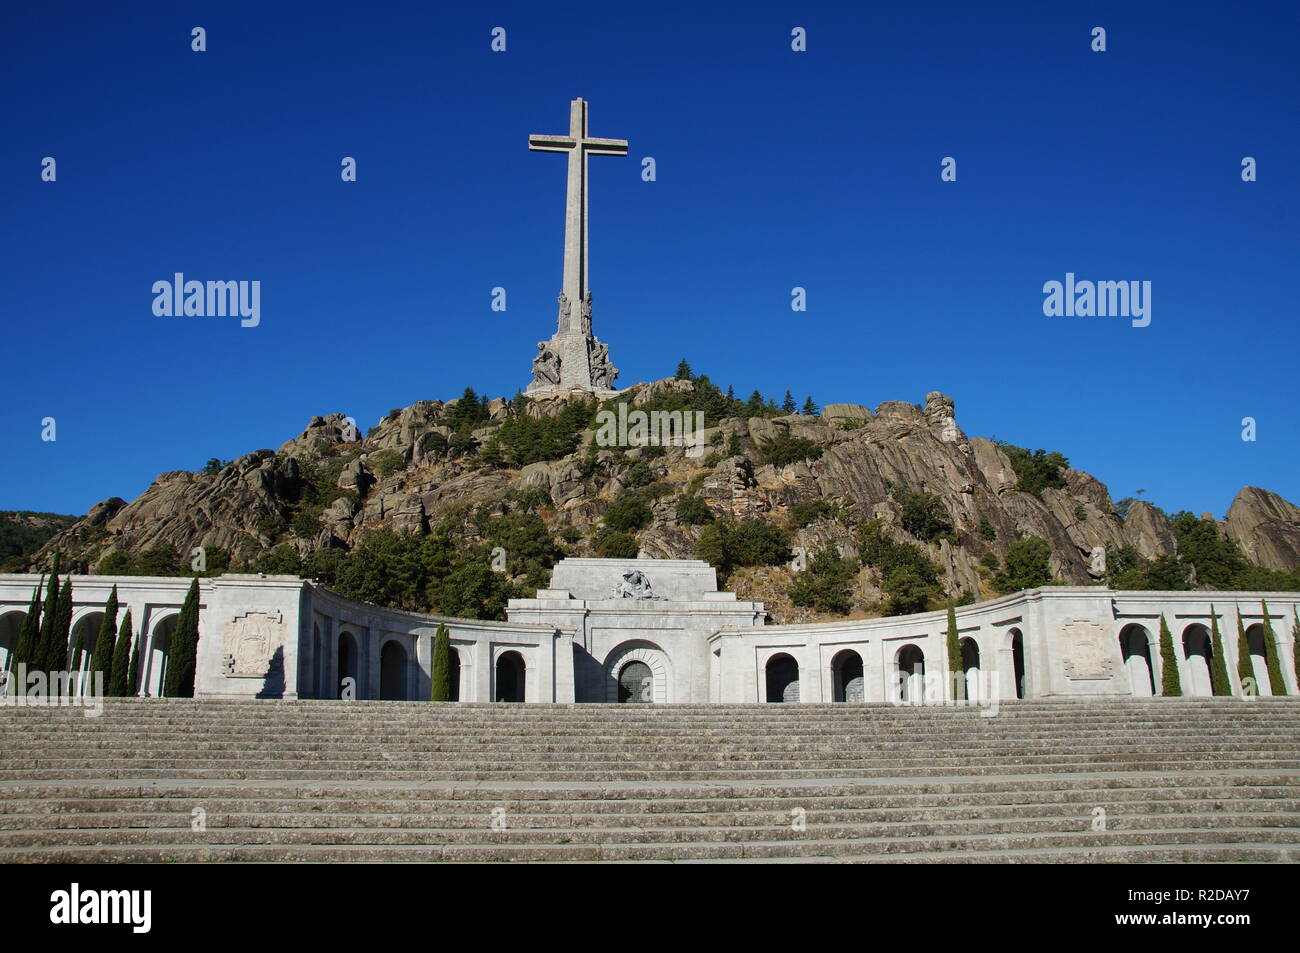 04 October 2018, Spain, El Escorial: A 155 meter high and 44 meter wide concrete cross stands on the mountain peak Risco de la Nava in the Valle de los Caídos (Valley of the Fallen) about 60 kilometers northwest of Madrid. In the monument in the Sierra de Guadarrama is the tomb of the Spanish dictator Franco. Three days after his death, he was buried in the Basilica on 23 November 1975. The mausoleum, which was driven into the rock by 20,000 forced laborers between 1940 and 1959, is considered one of the largest in the world. It is the most important architectural symbol of Franco's dictators Stock Photo